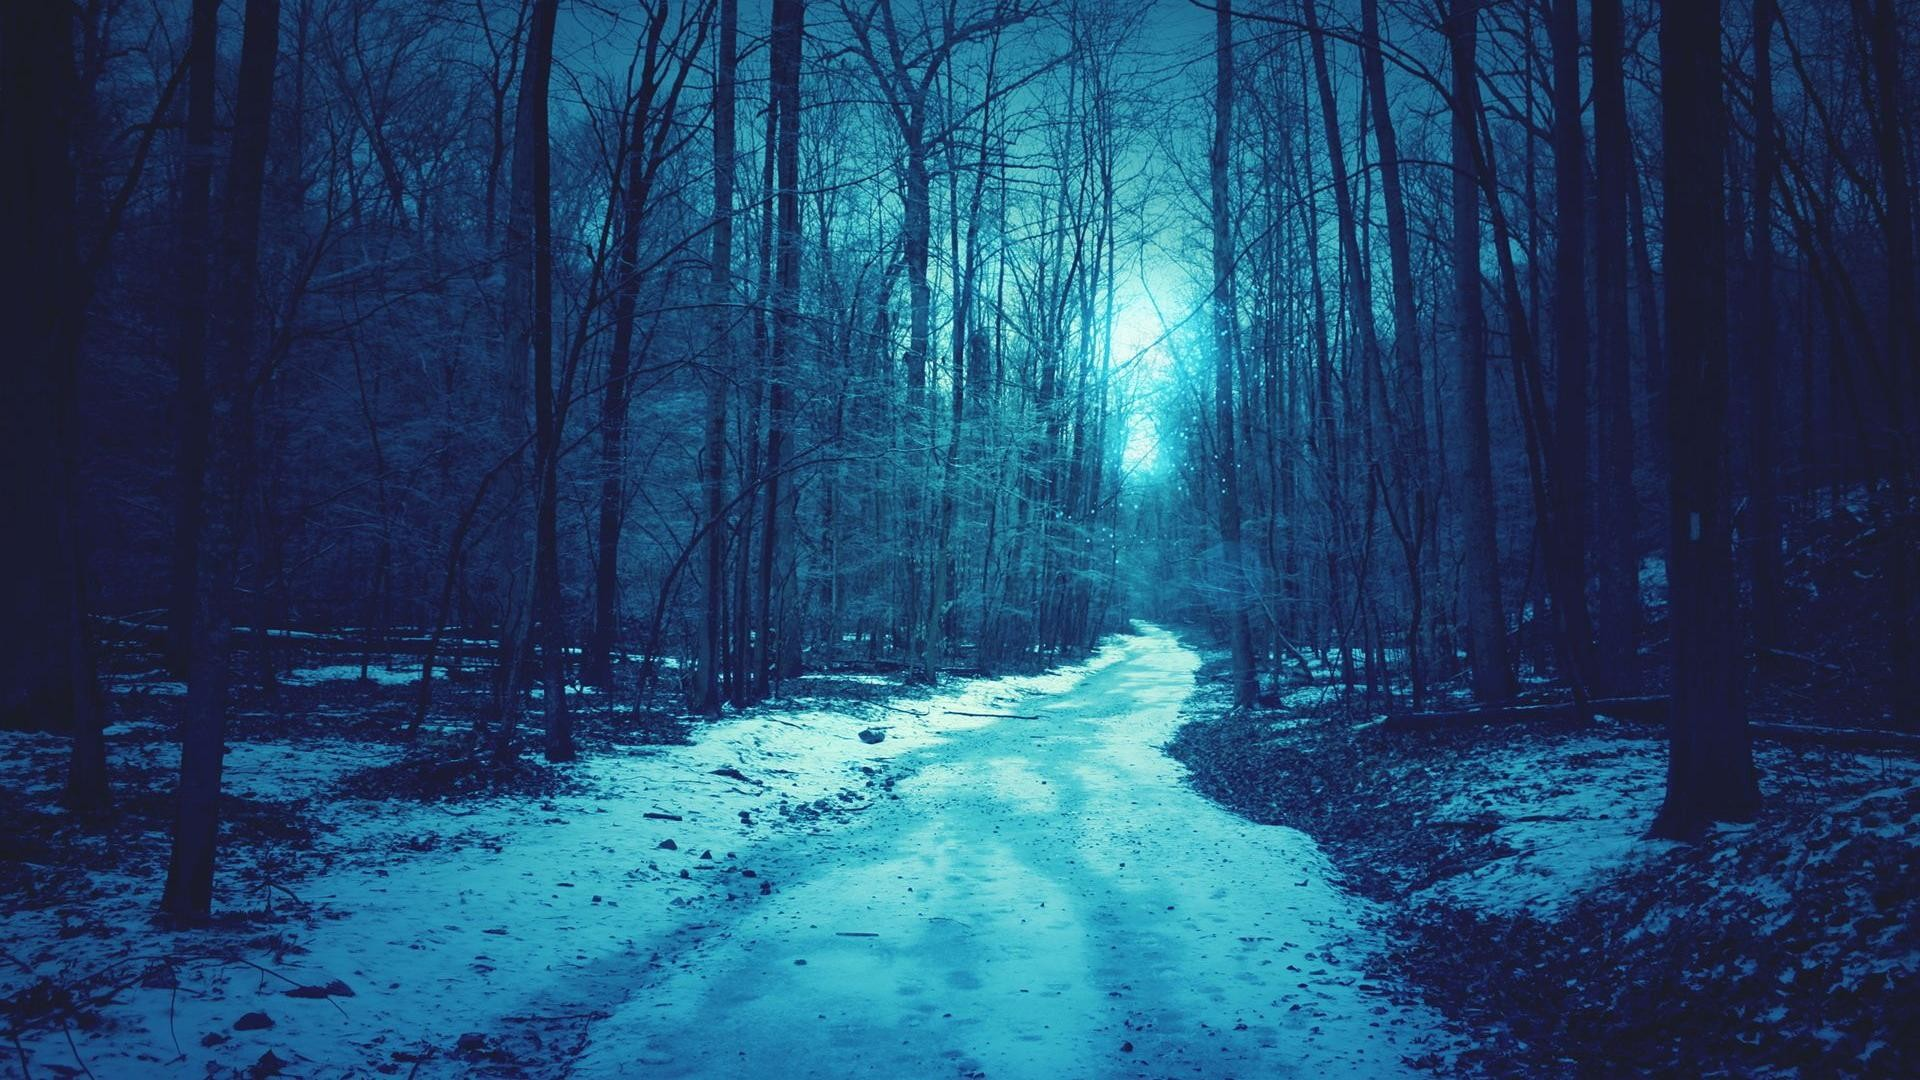 The winter snow forest Shallow blue backgrounds wide wallpapers :1280×800,1440×900,1680×1050